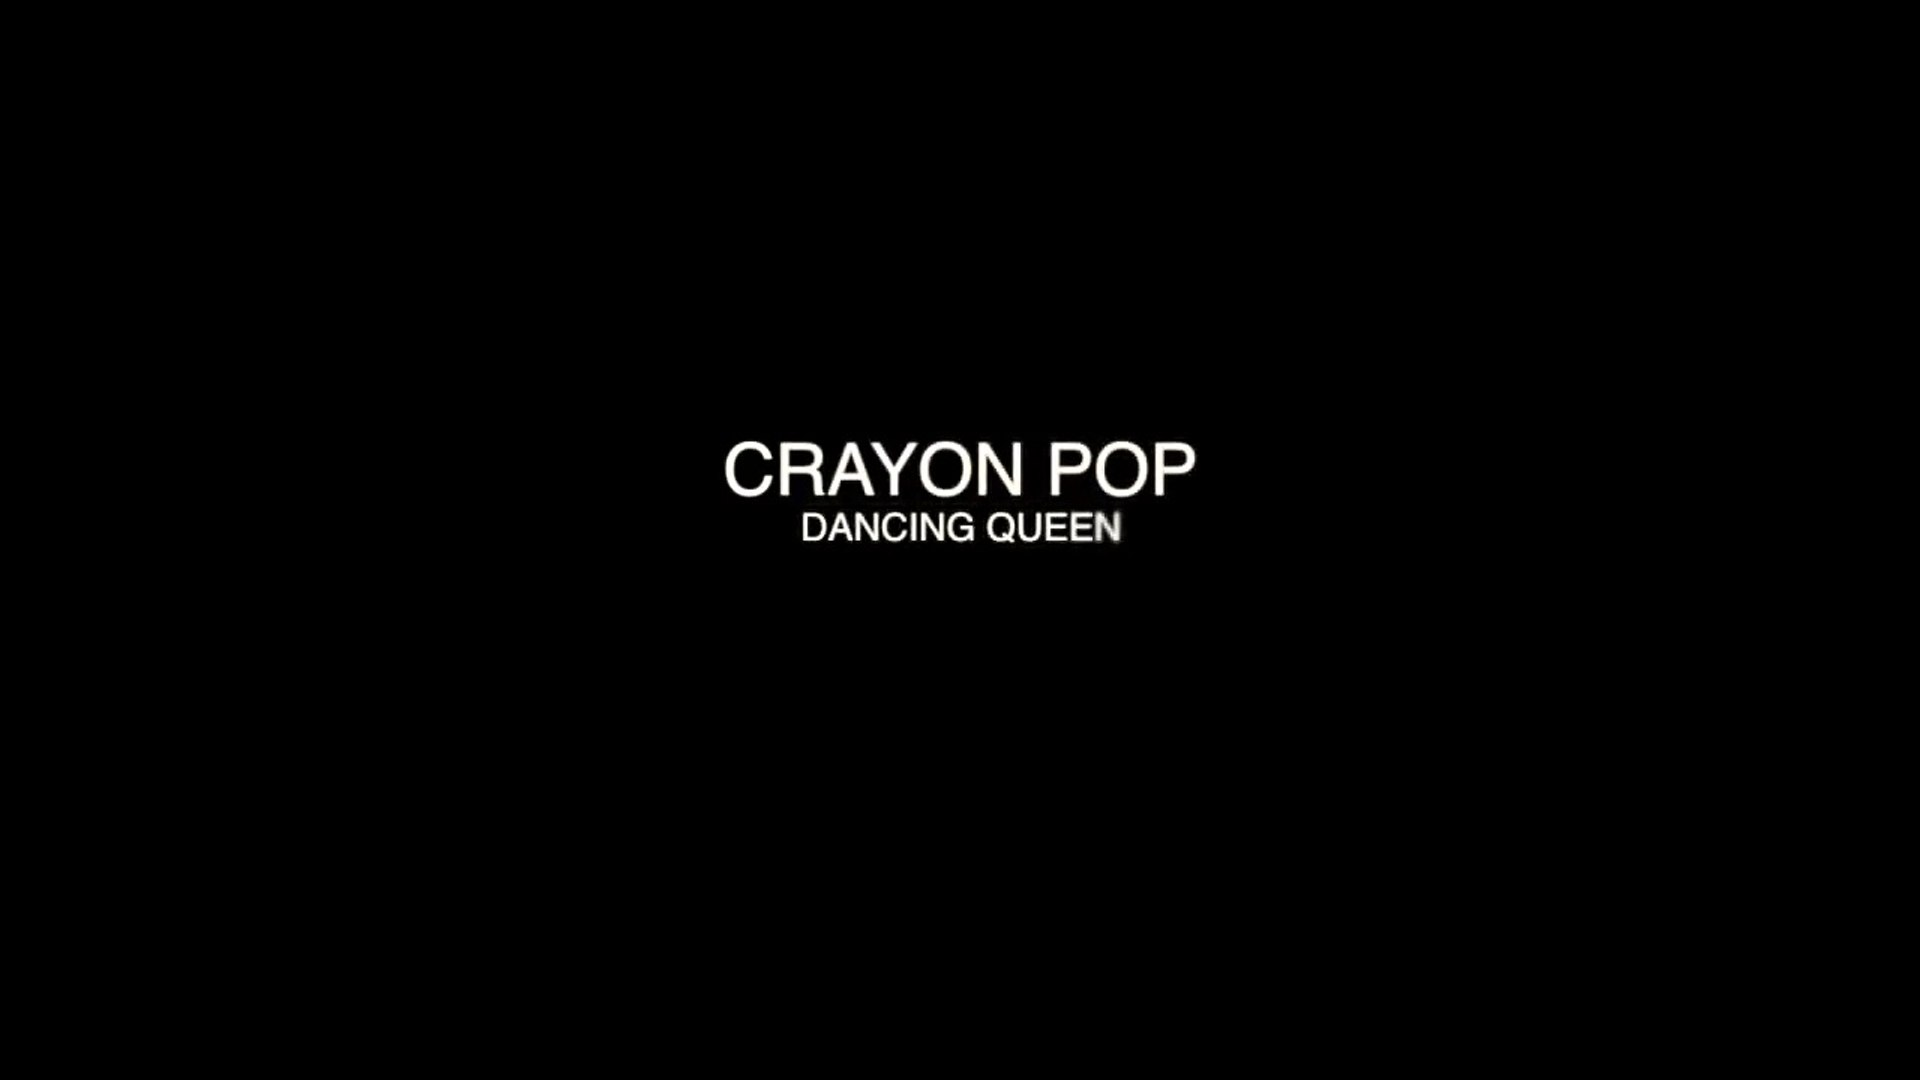 Crayon PopNew Single  Dancing Queen  2012 10 26 Comeback!! hip hop wired,hip hop music